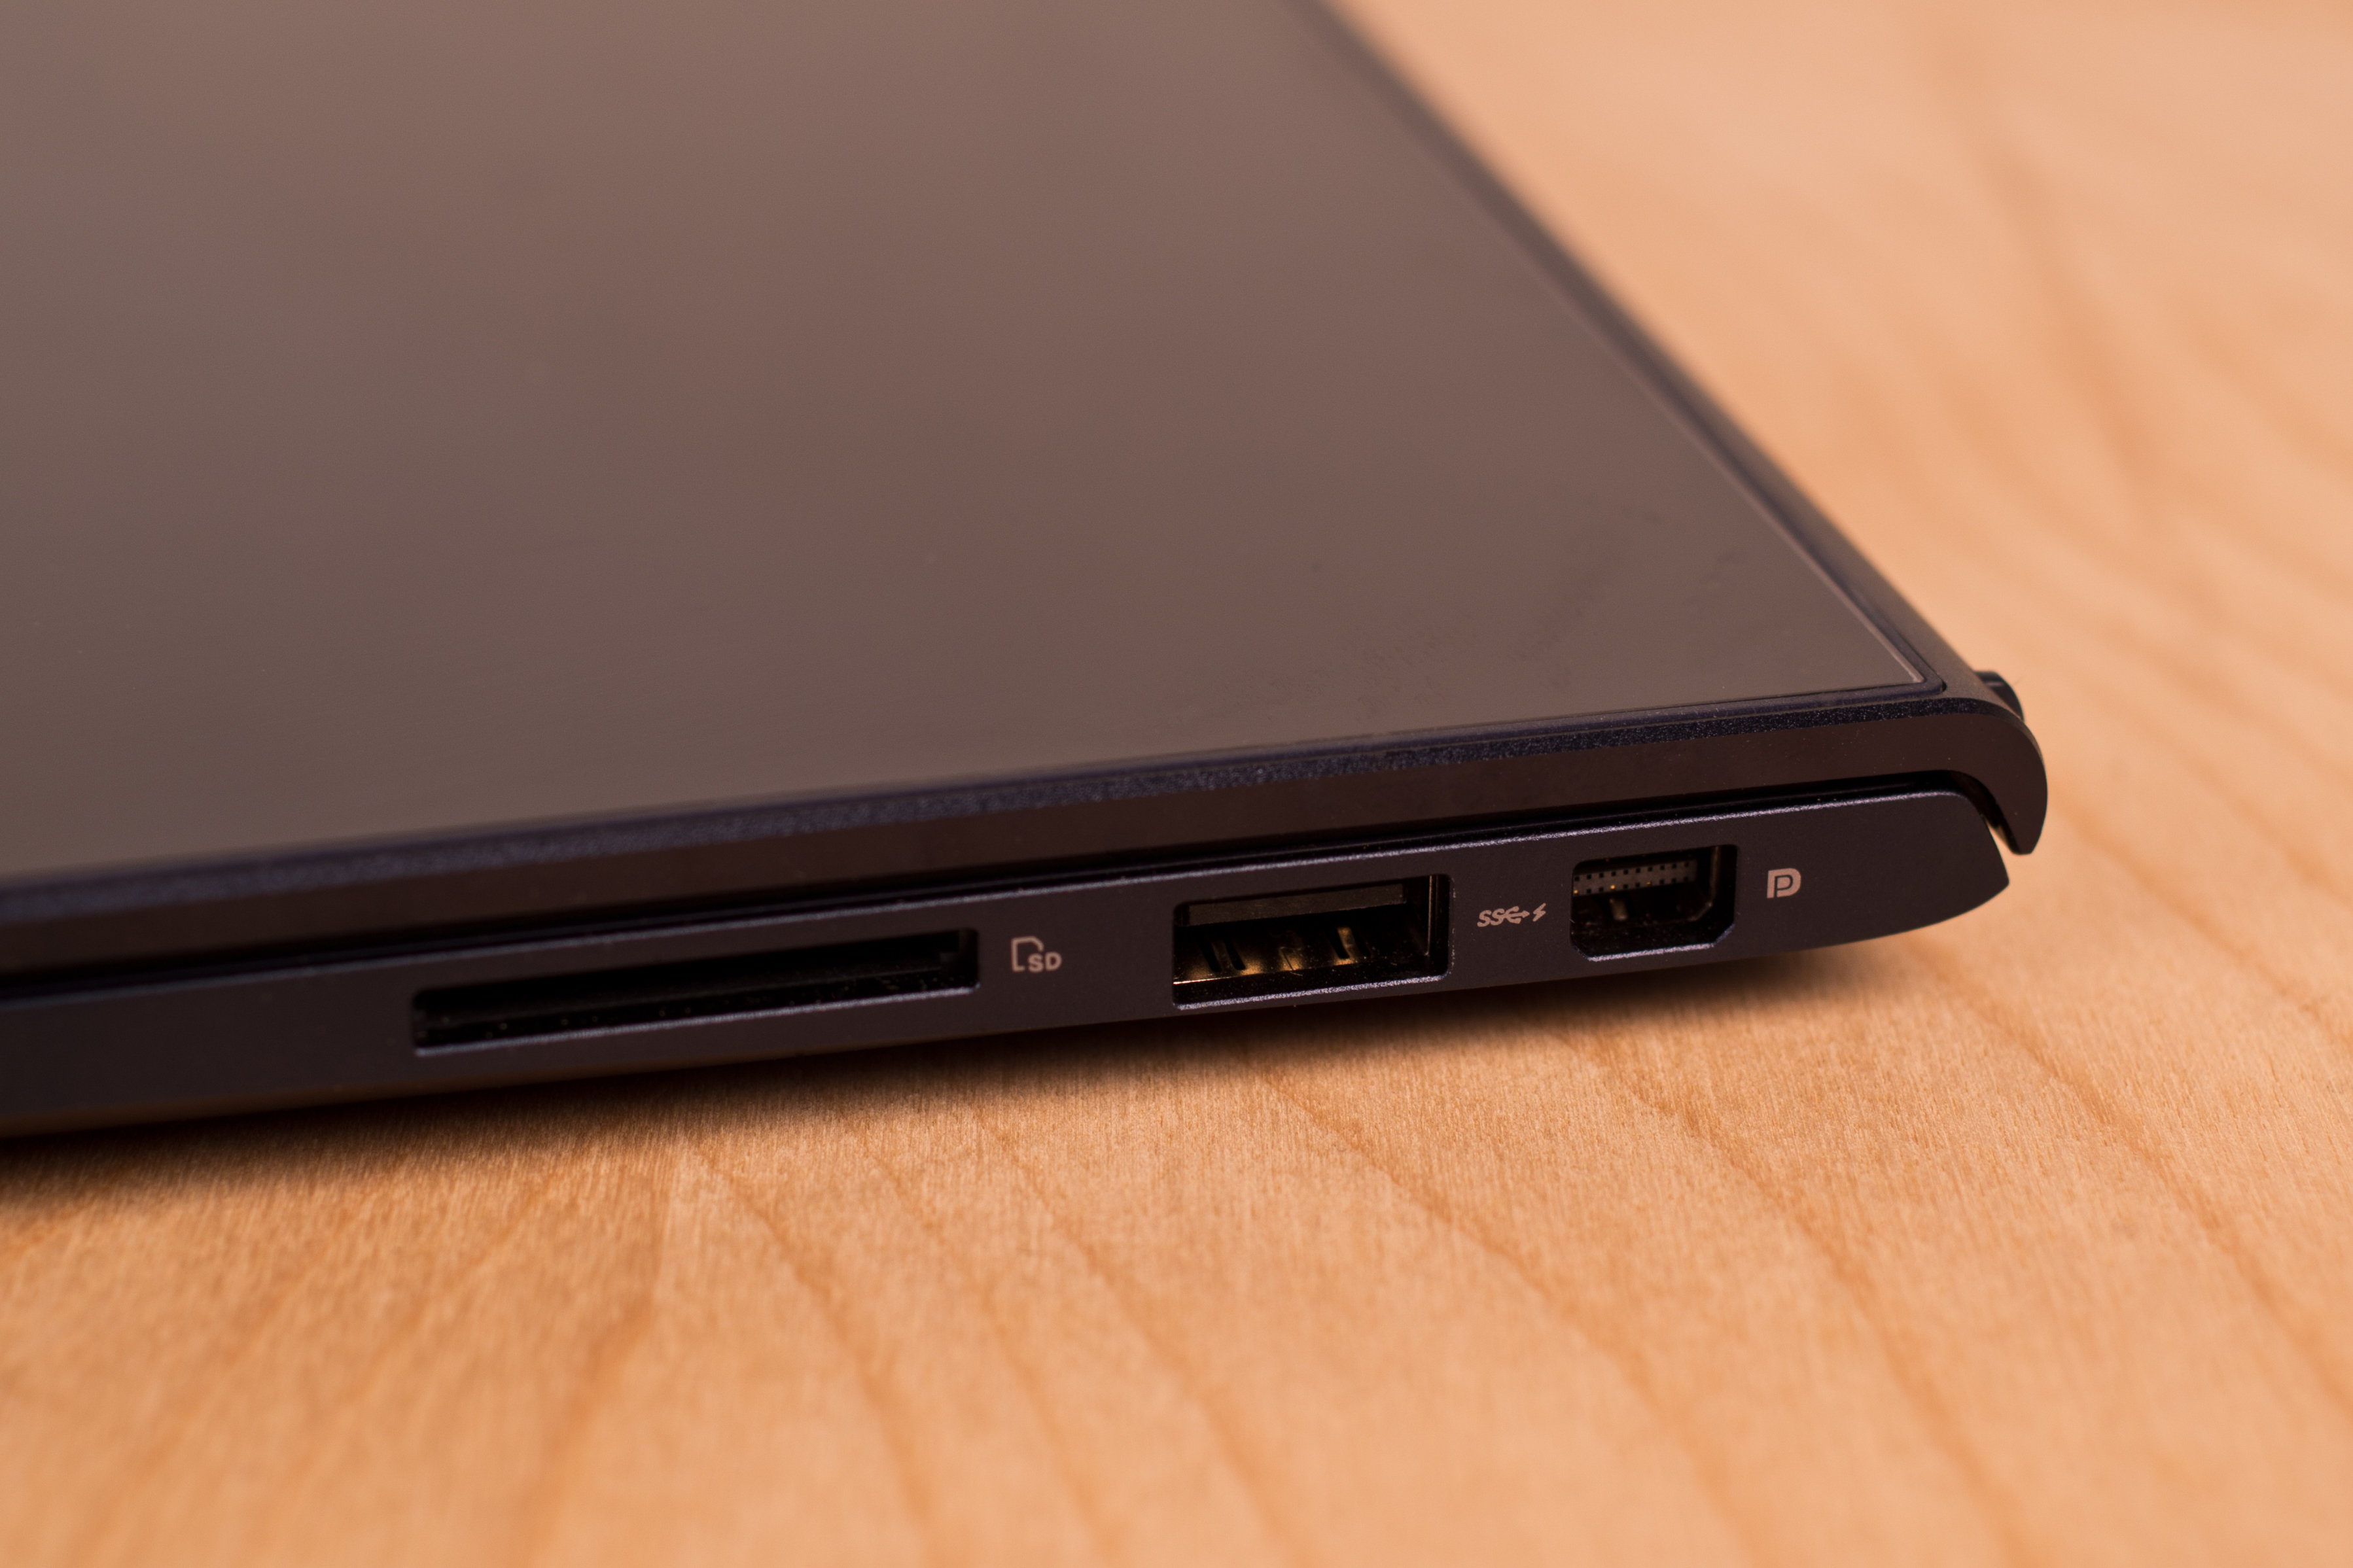 A close-up picture of the Asus UX301L's ports.